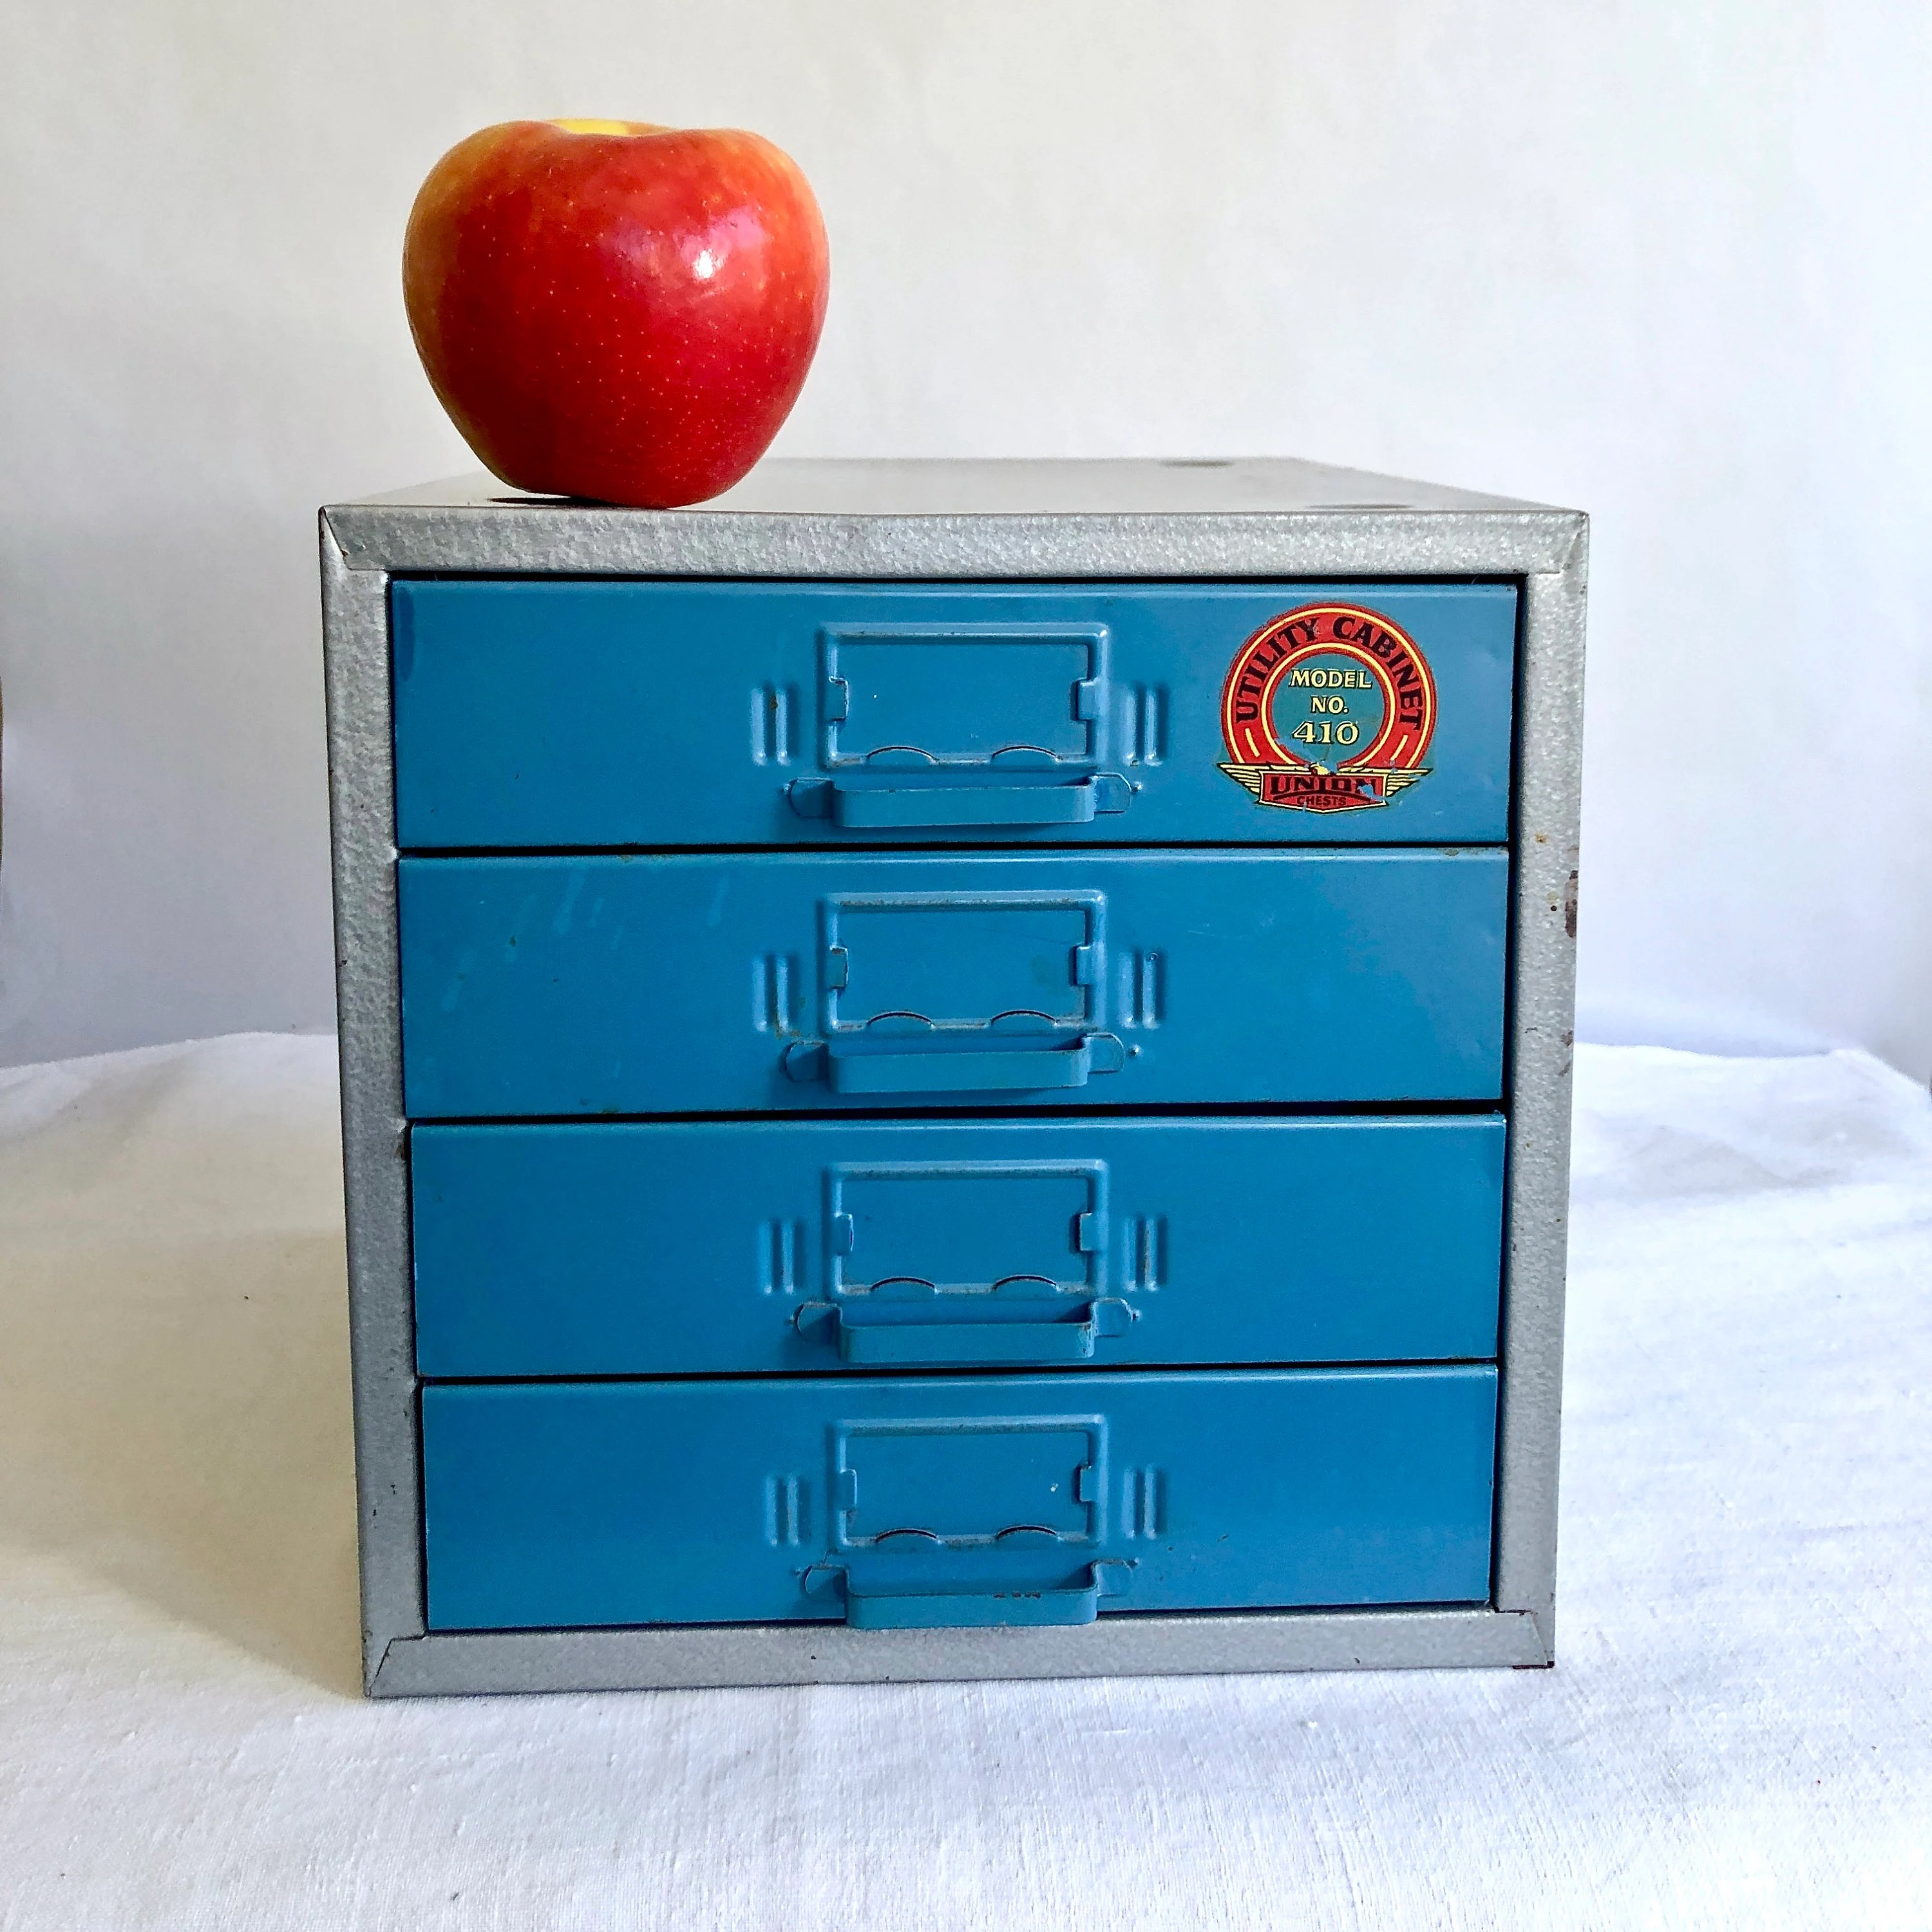 vintage metal tabletop parts storage utility cabinet small tool box 10 x 10 x 11 in union chests model 410 industrial blue grey grid